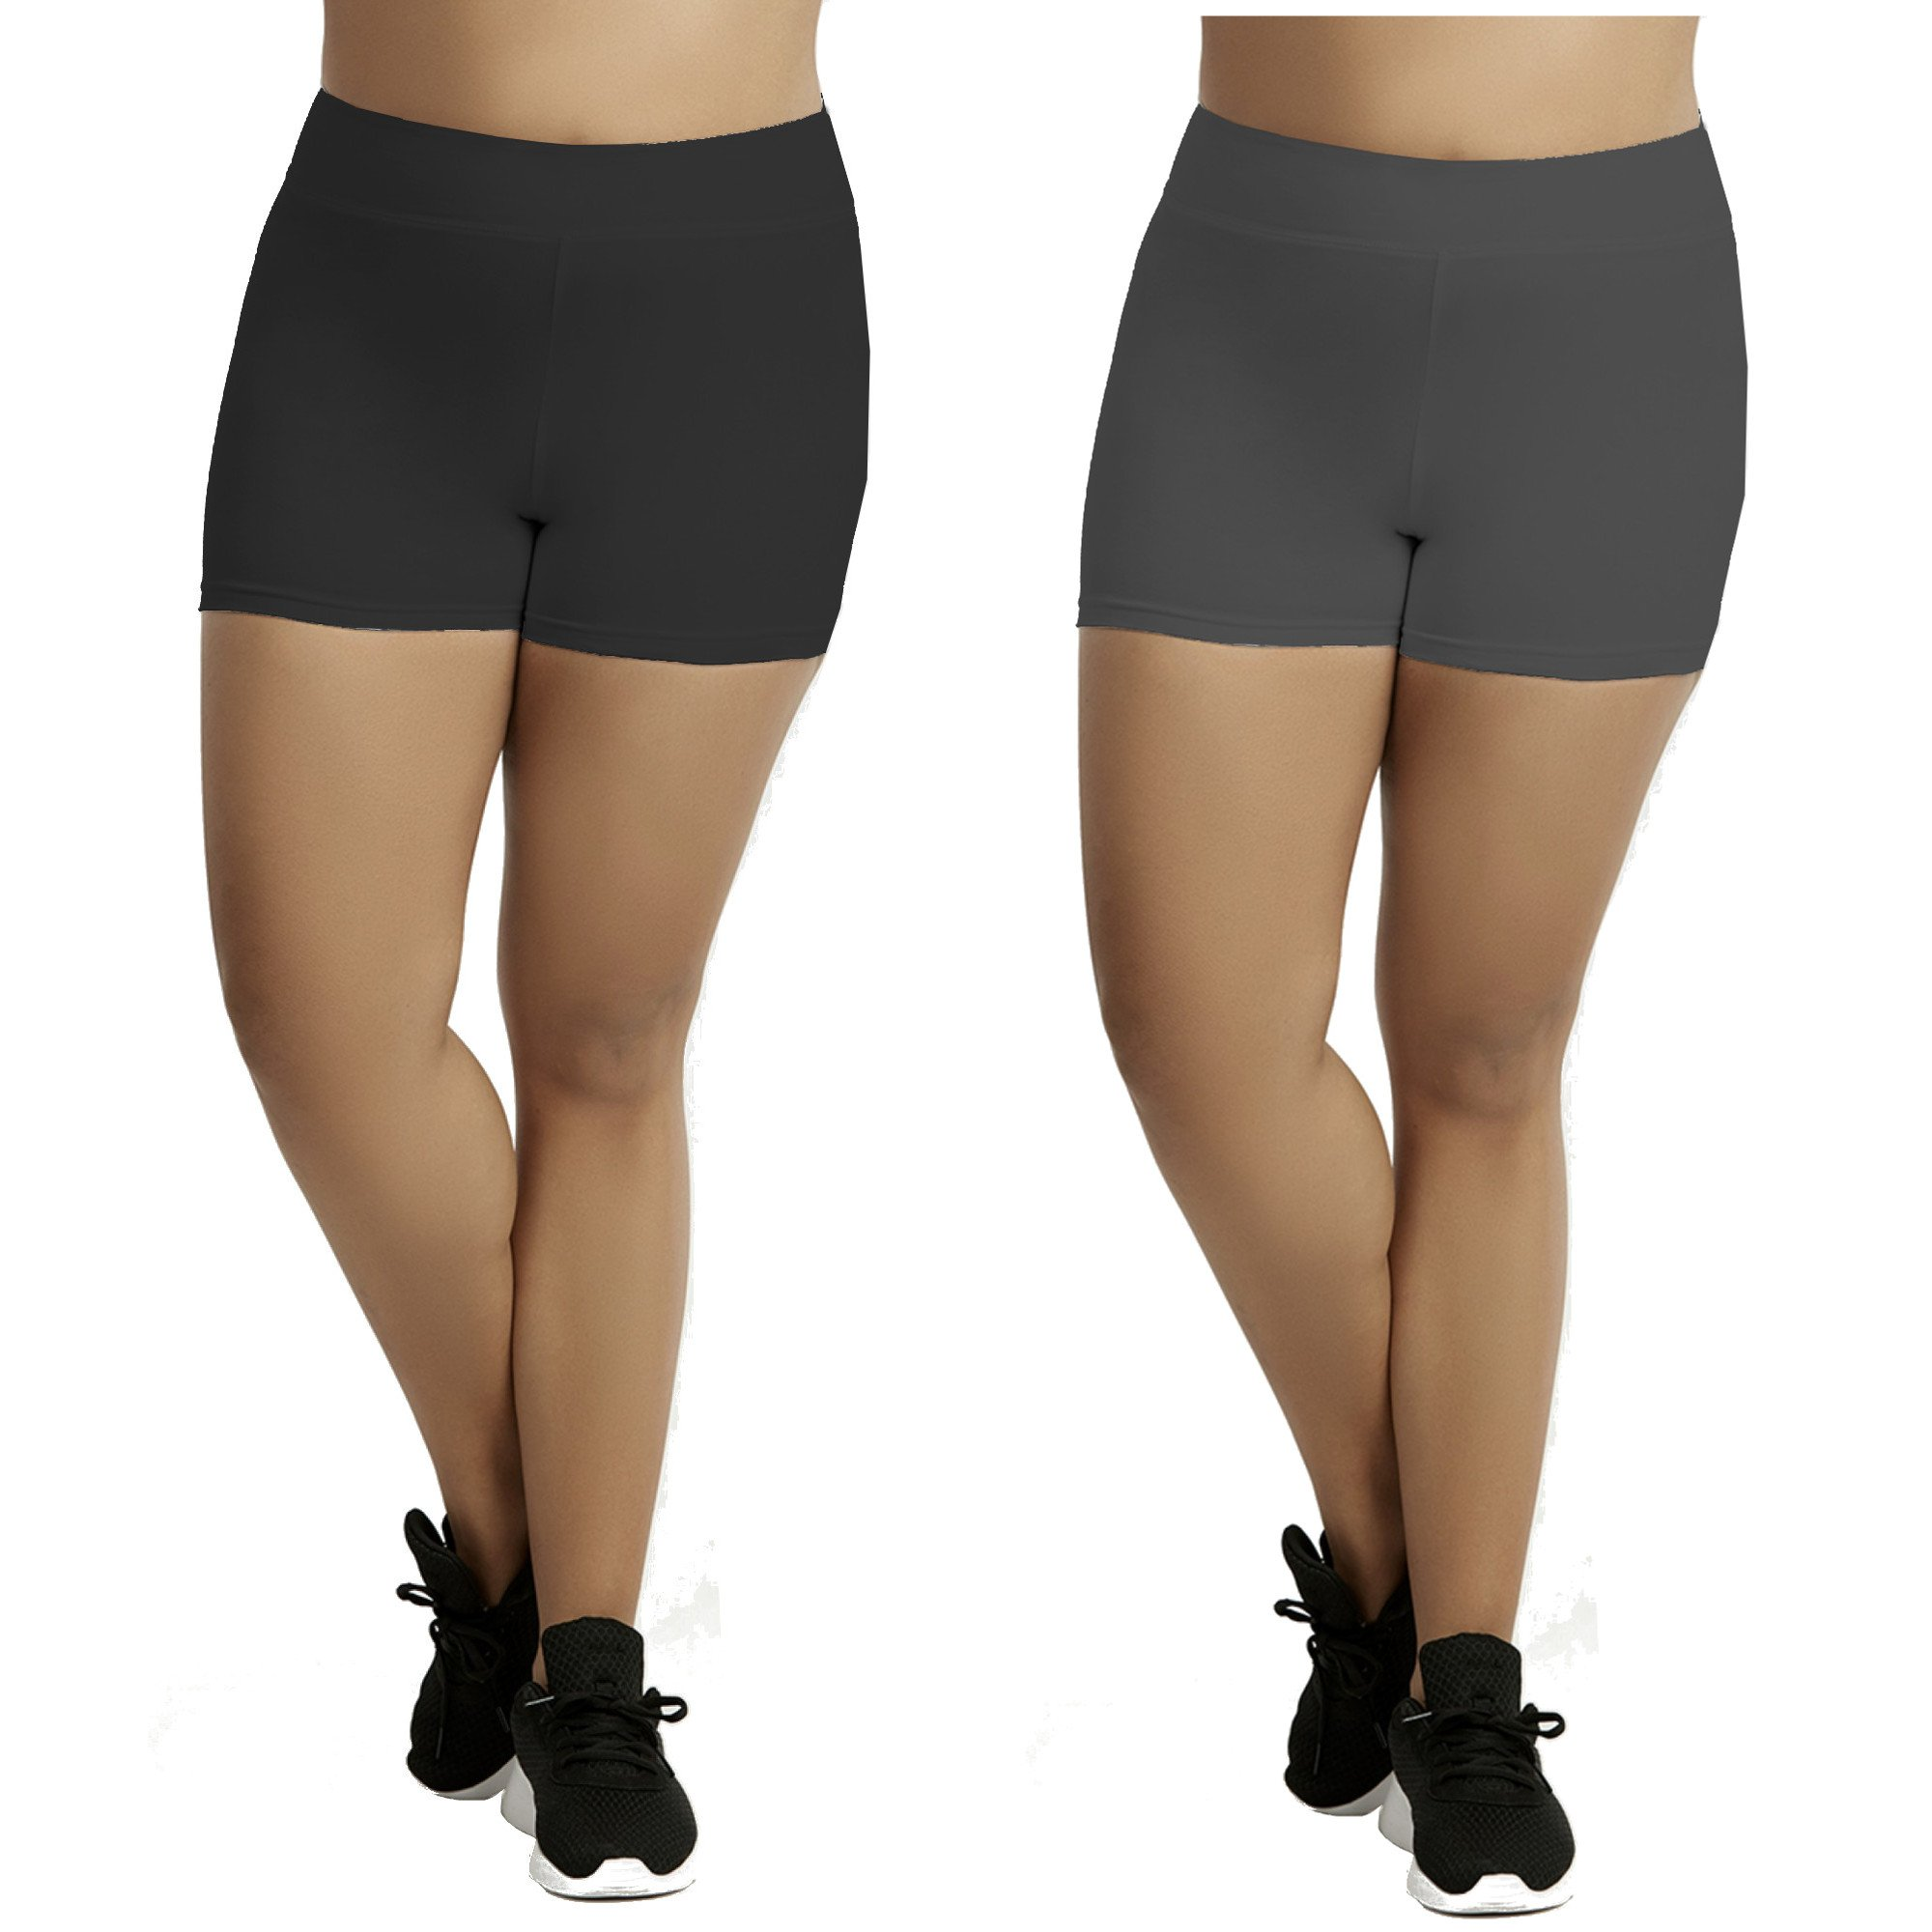 Women's Plus Size Cotton Spandex Boyshorts - 2 Pack - Black and Charcoal - 2X